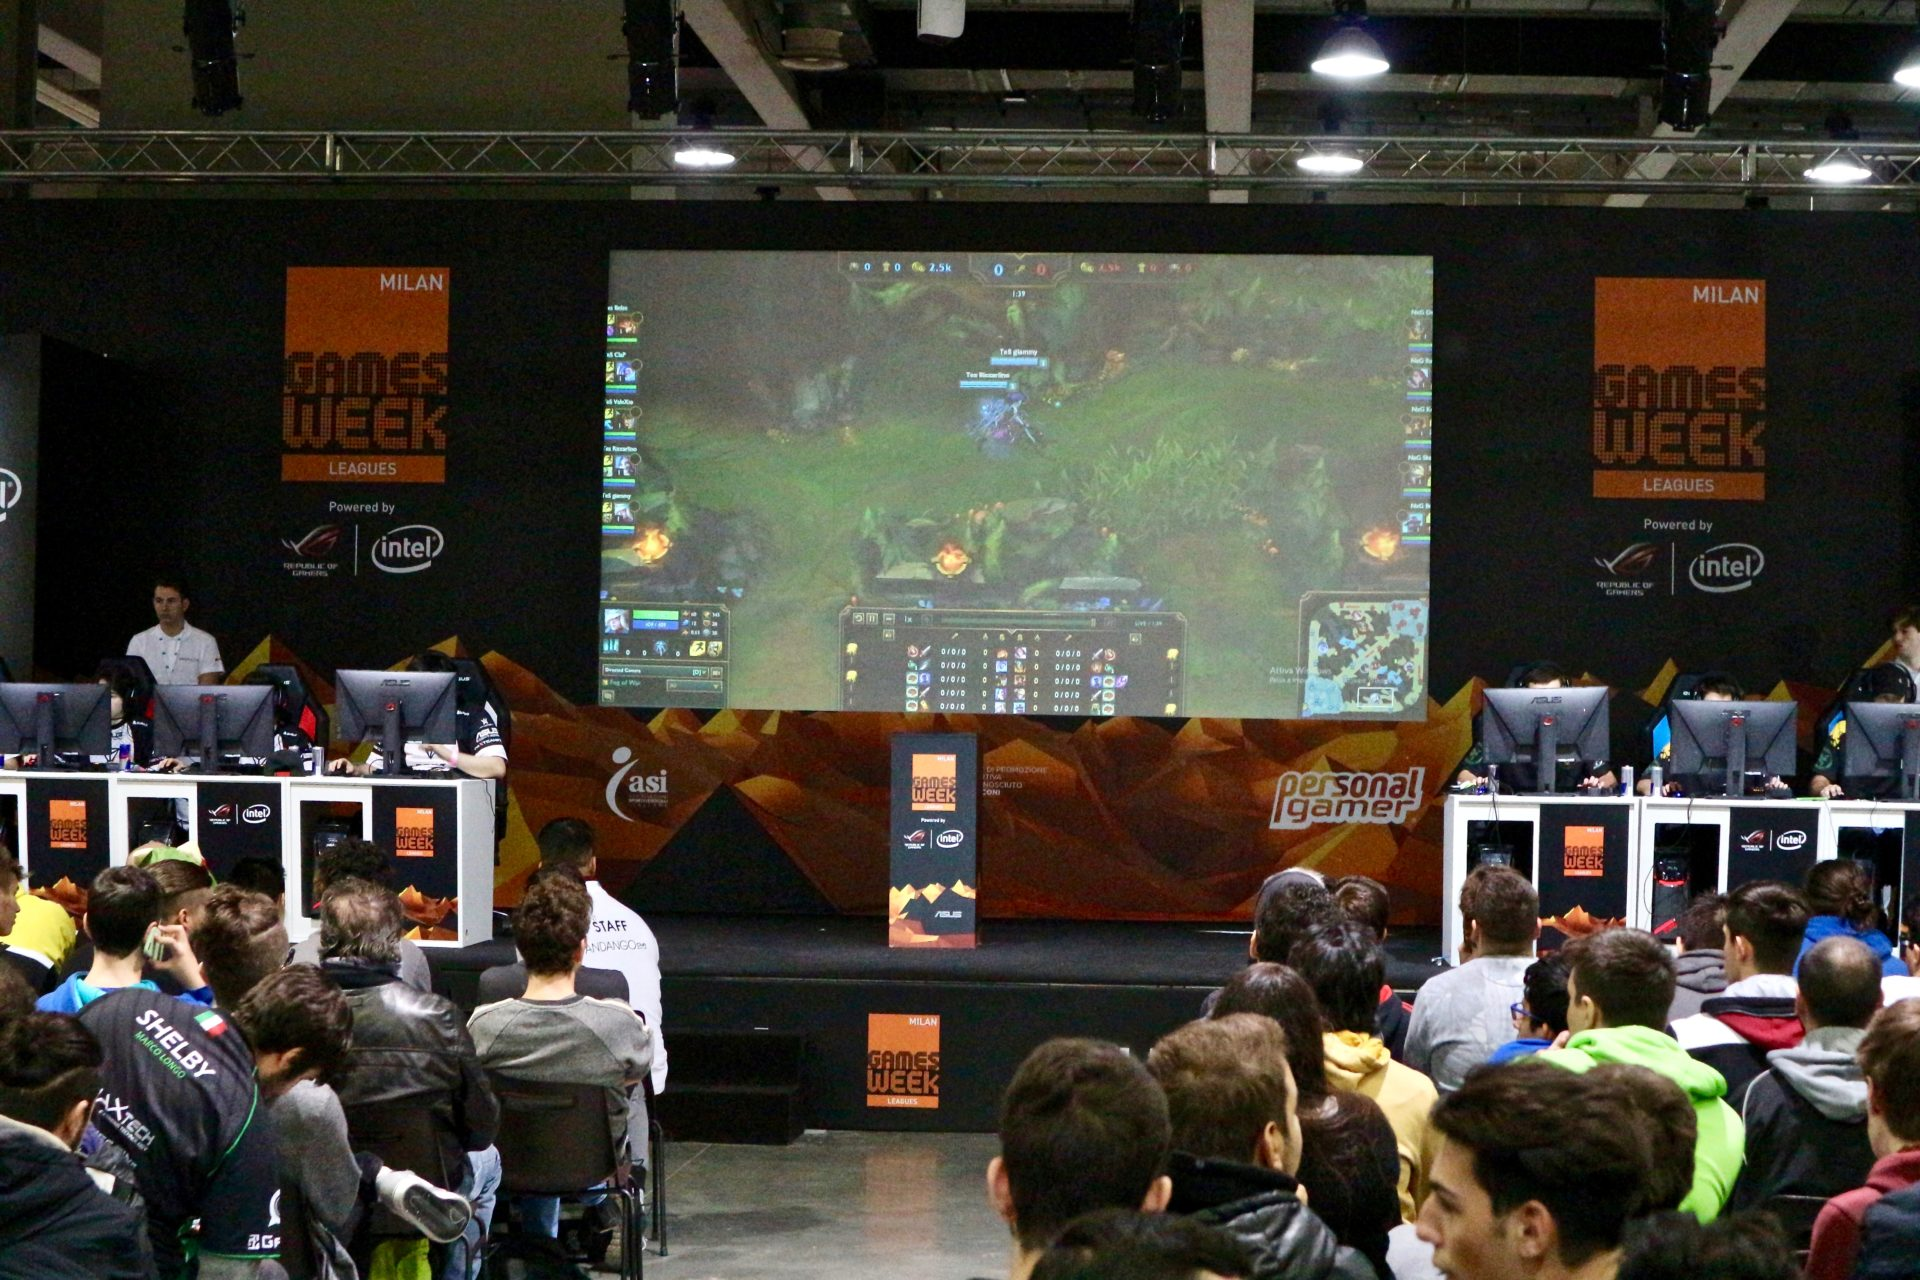 Milan Games Week 2016 è stata un'occasione sprecata 6